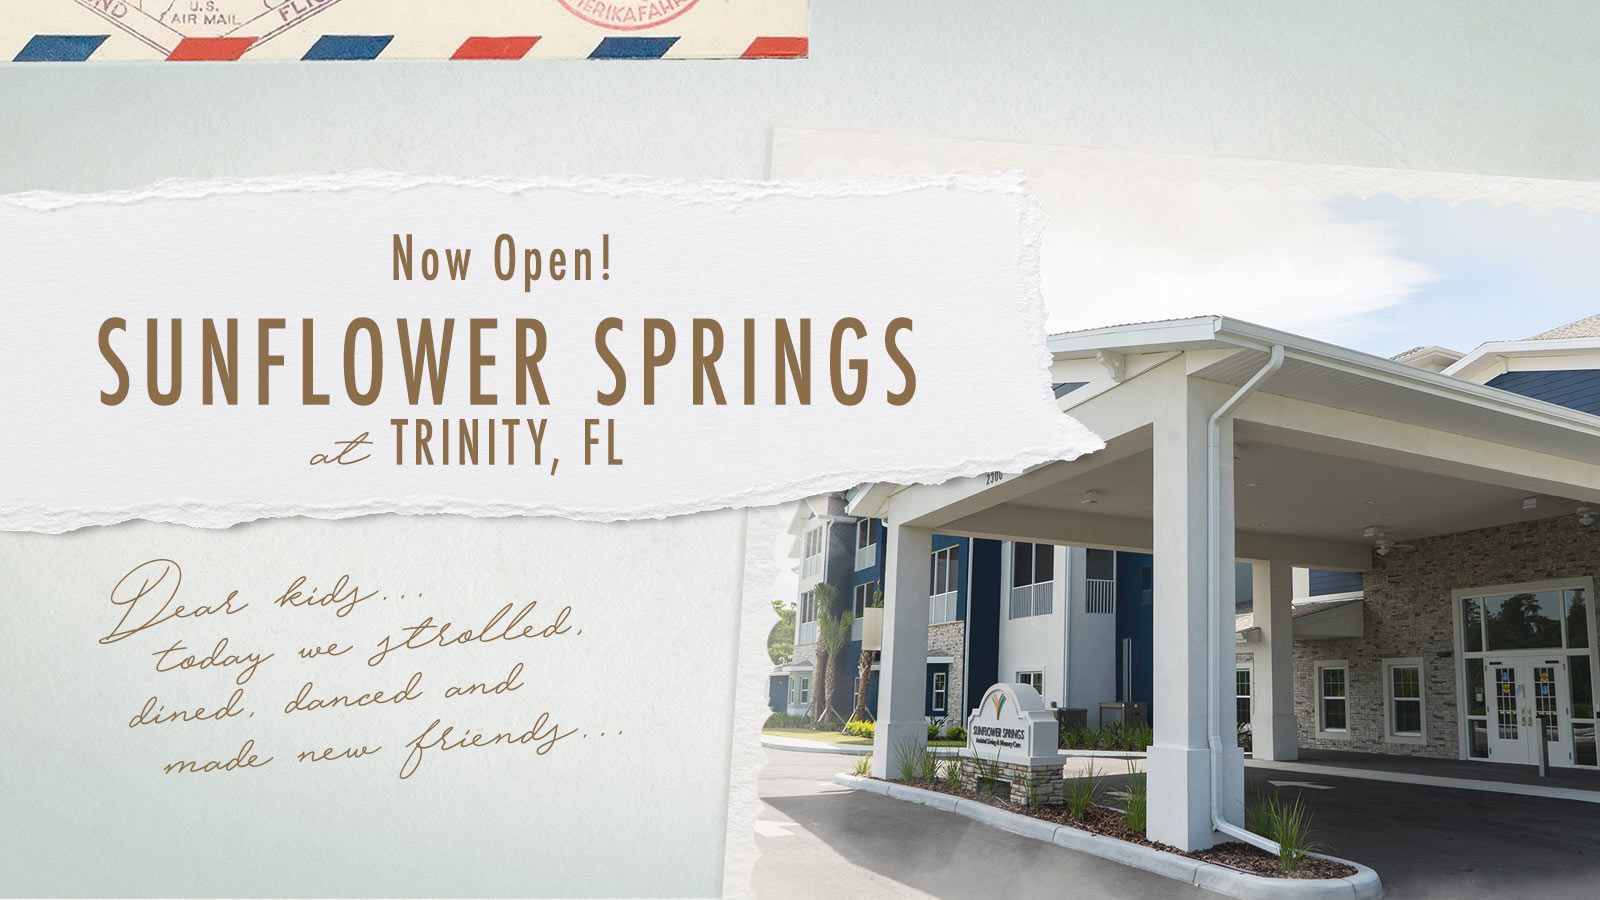 Sunflower Springs at Trinity an assisted living and memory care community now open in Trinity FL